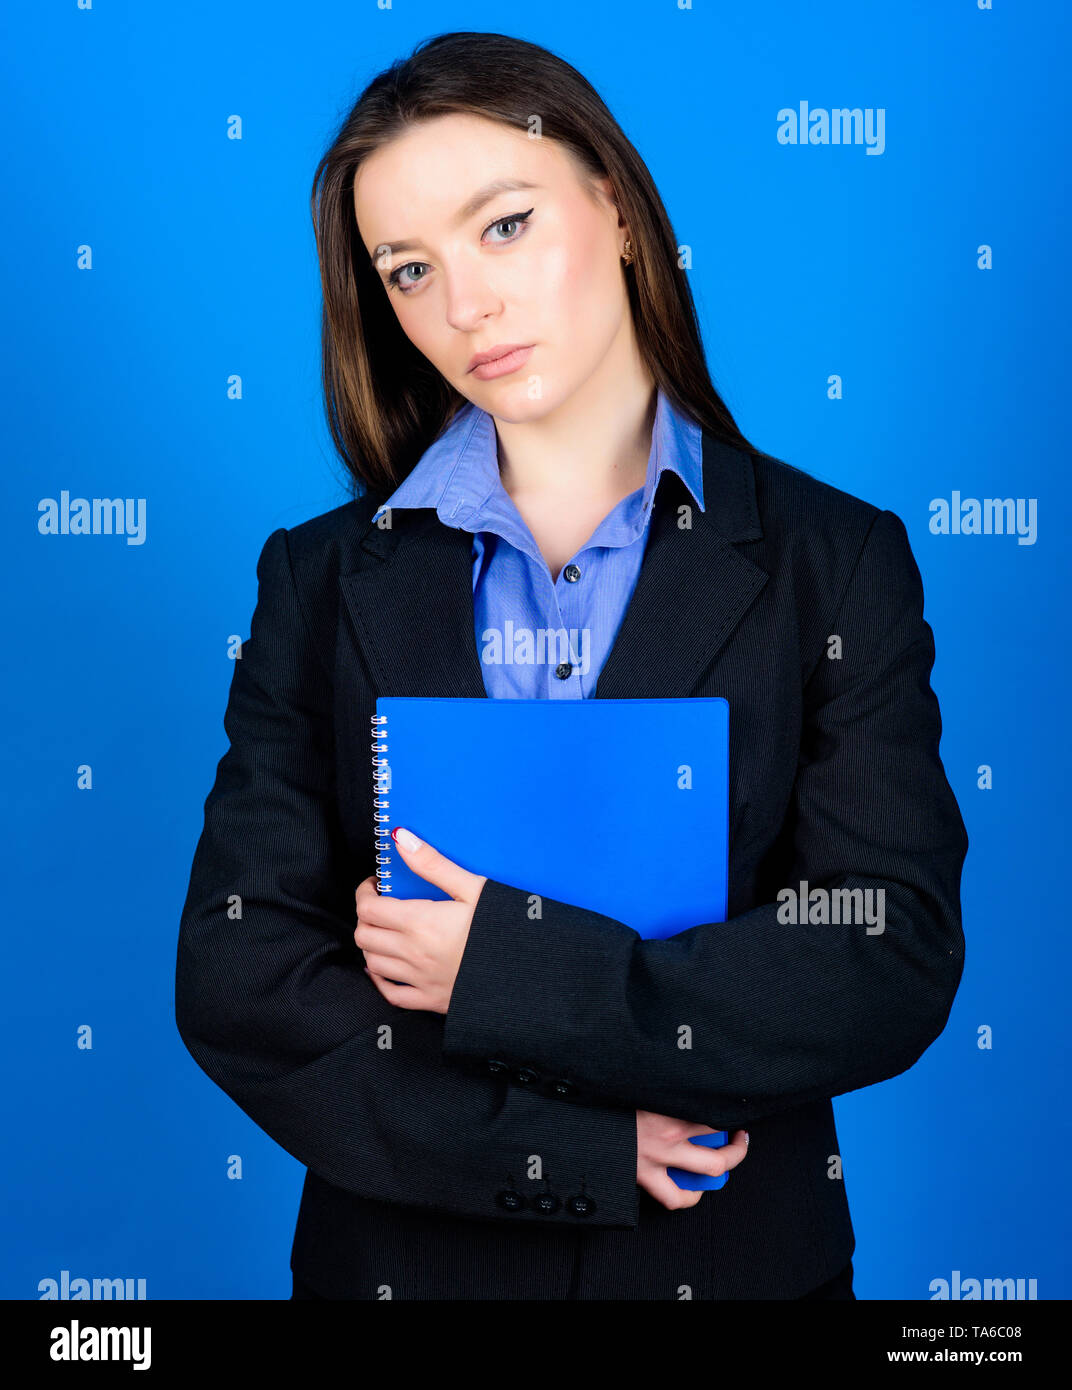 woman in jacket with paper notes. ready for lesson. education. businesswoman. student life. Smart beauty. nerd girl student in formal clothes. business fashion. Schoolgirl with document folder. - Stock Image